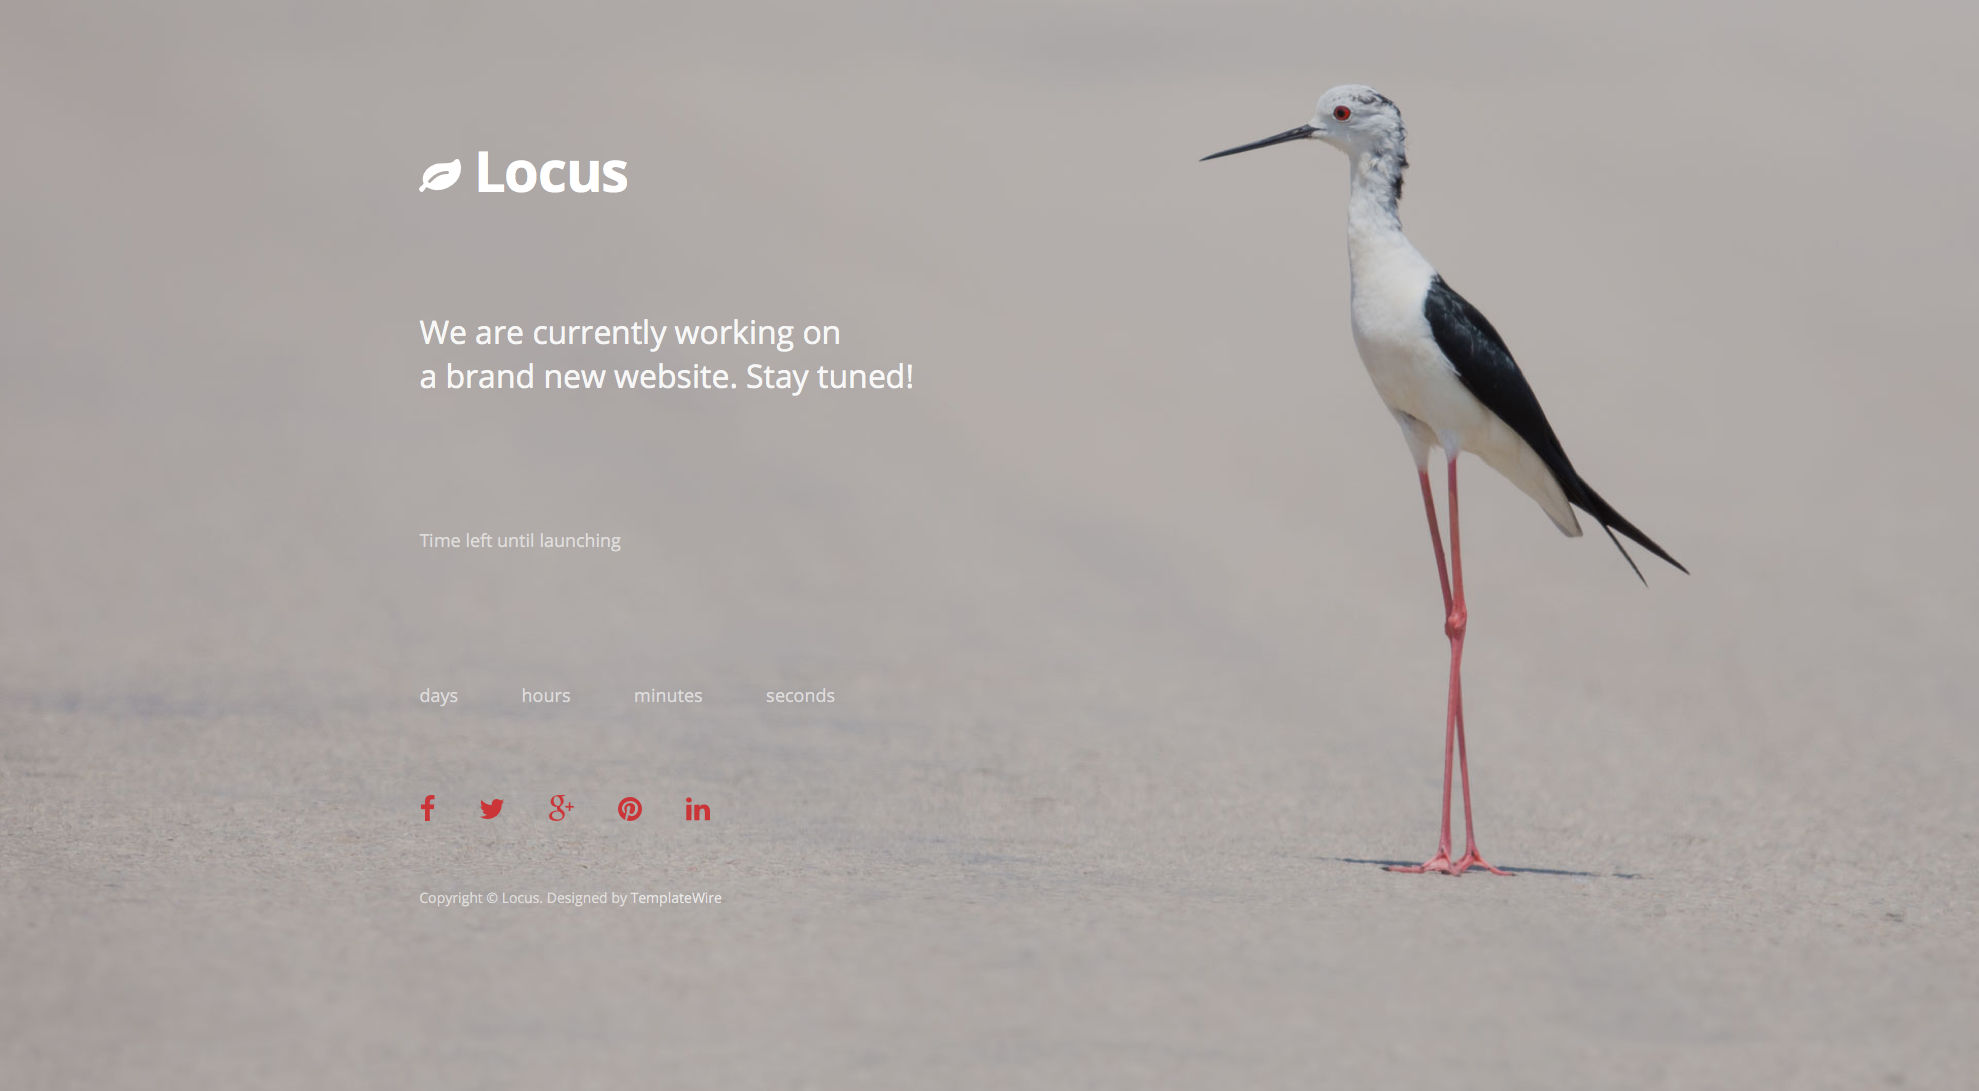 Locus is a free responsive coming soon HTML5 template built with Bootstrap. Locus features full screen background and a countdown timer. Locus free HTML countdown template is fully responsive, retina ready and comes with the popular Bootstrap CSS Grid System.